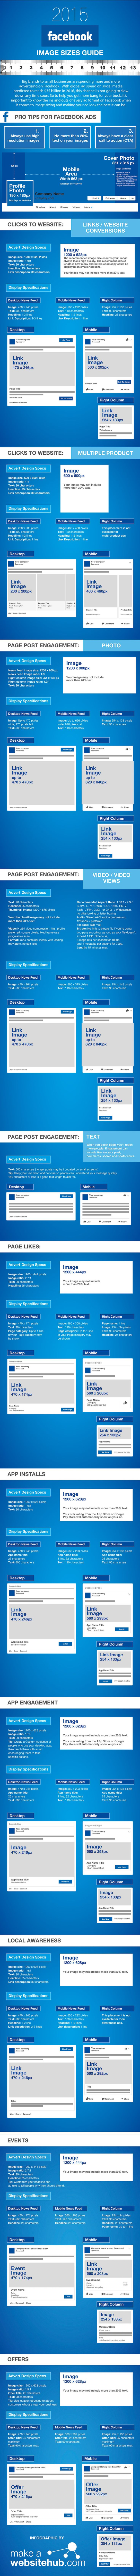 17 best ideas about facebook image sizes post ad if you are looking for image sizes for other social media sites such as twitter